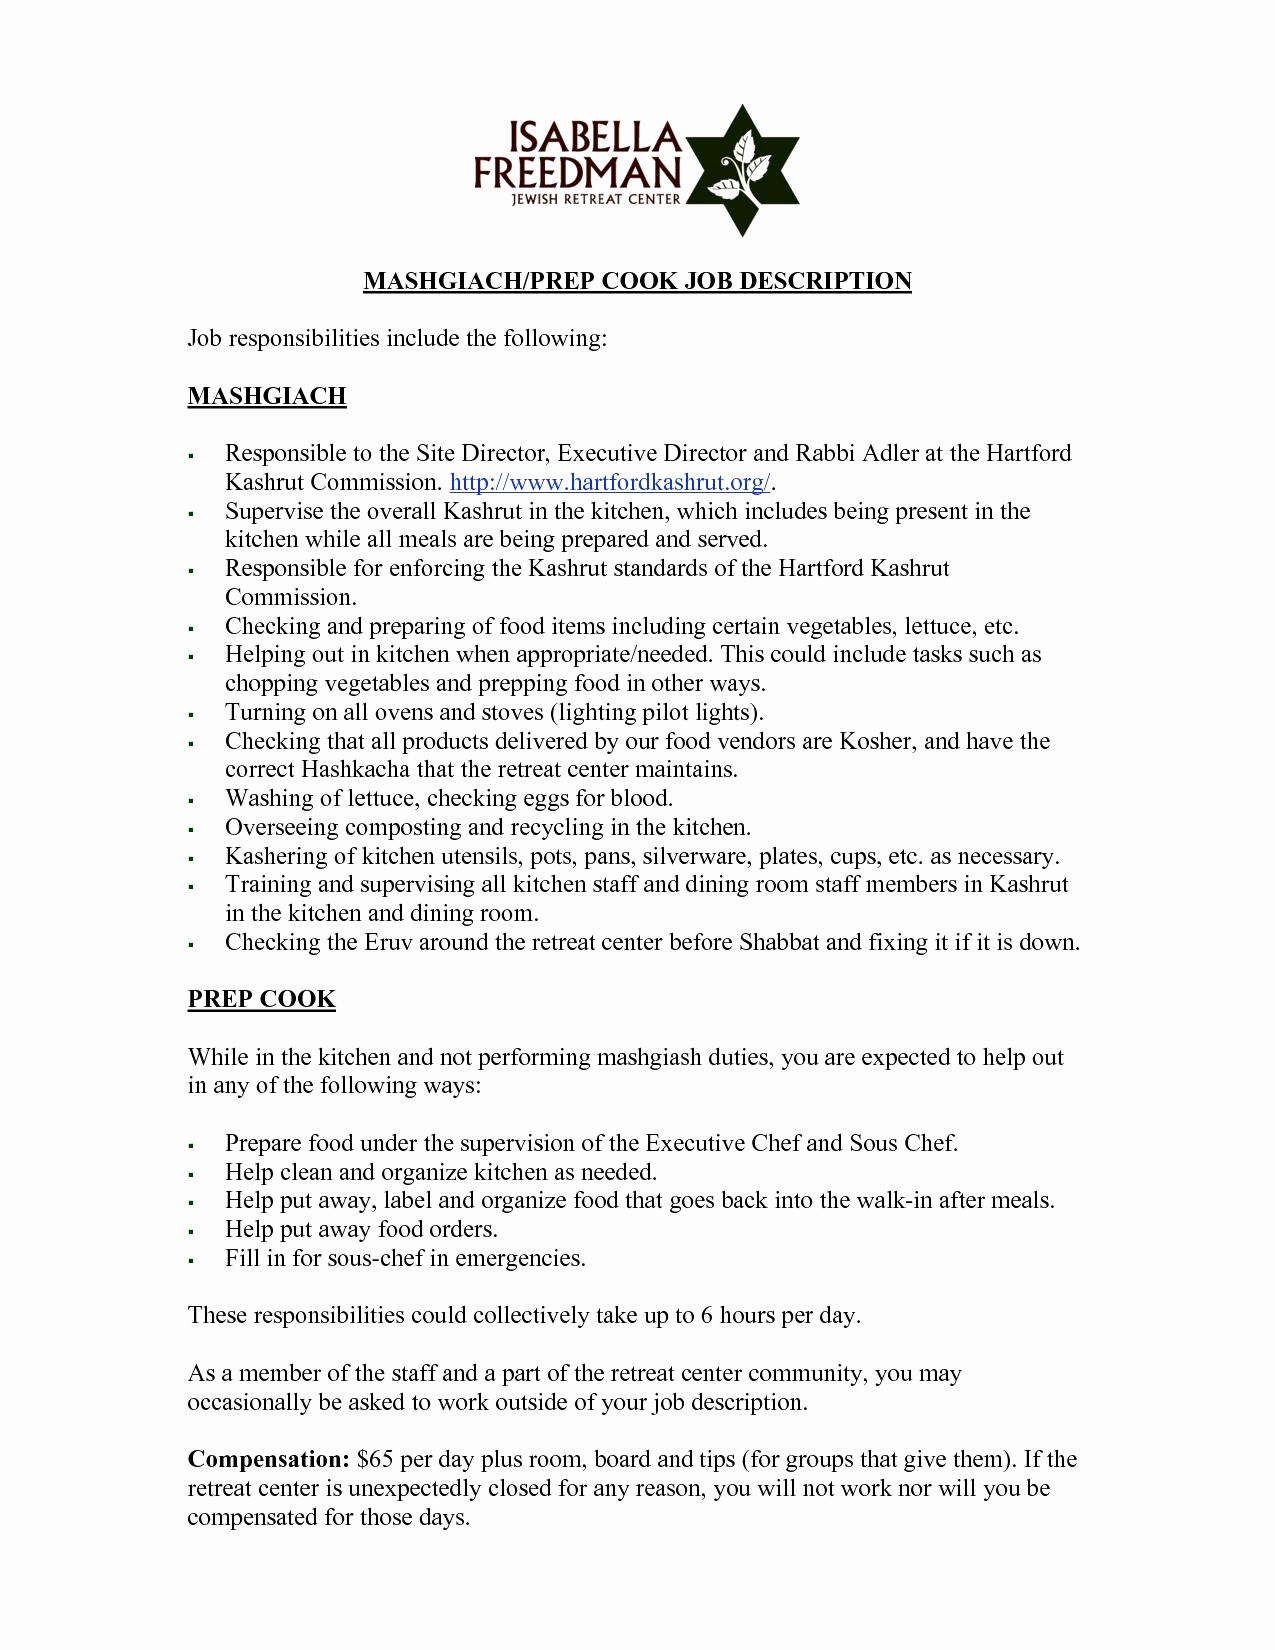 Job Resume Cover Letter Template Examples